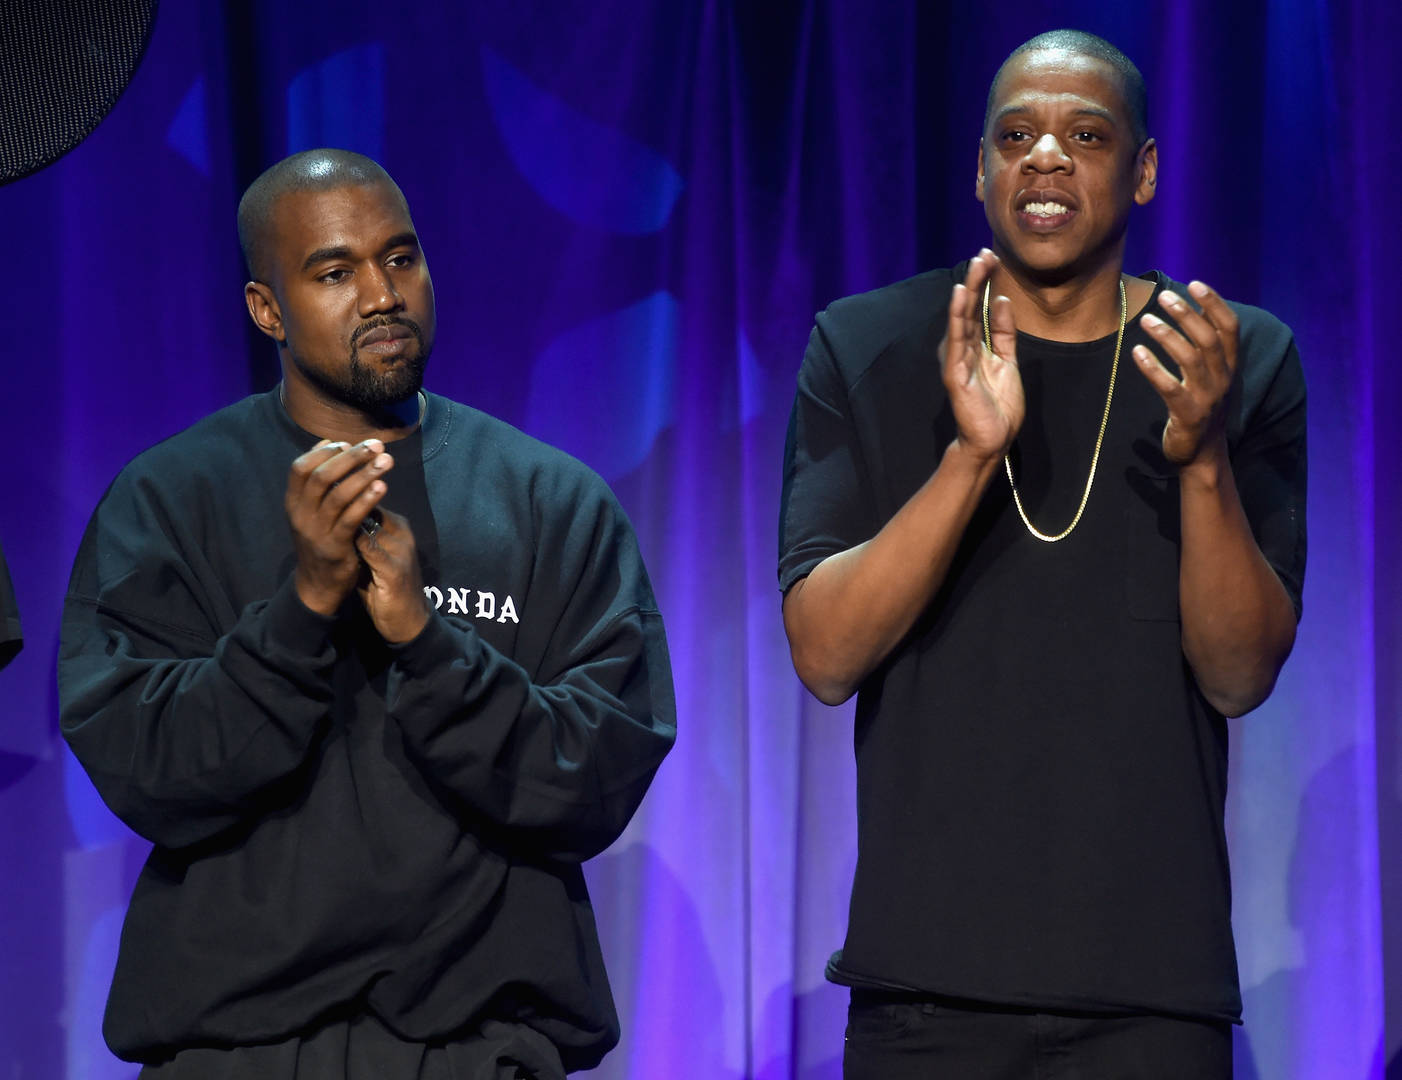 TIDAL Responds To Reports They Faked Kanye West & Beyonce's Streams